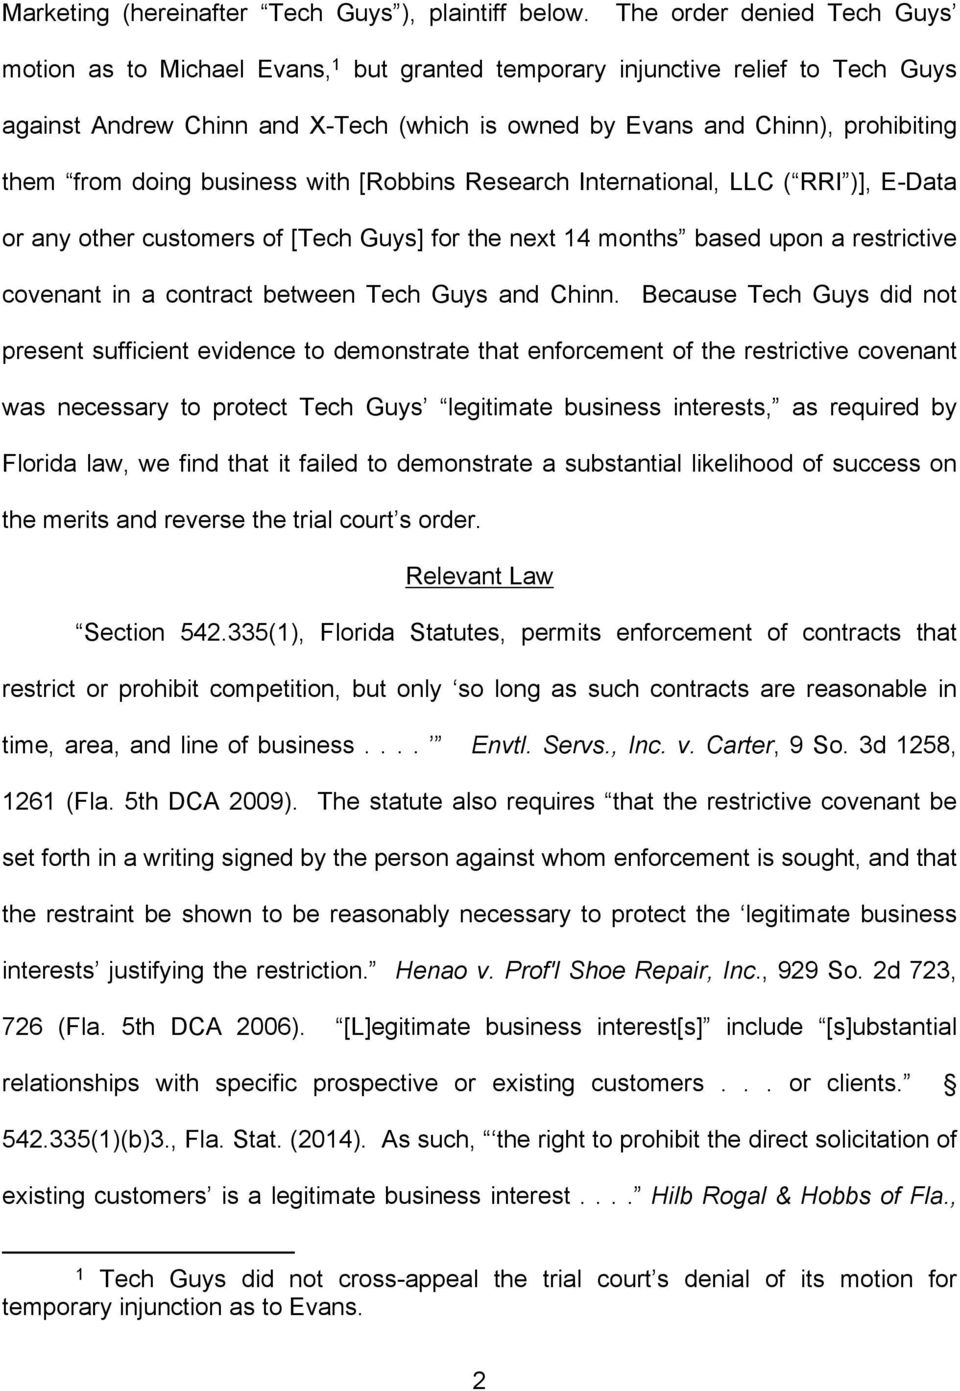 from doing business with [Robbins Research International, LLC ( RRI )], E-Data or any other customers of [Tech Guys] for the next 14 months based upon a restrictive covenant in a contract between